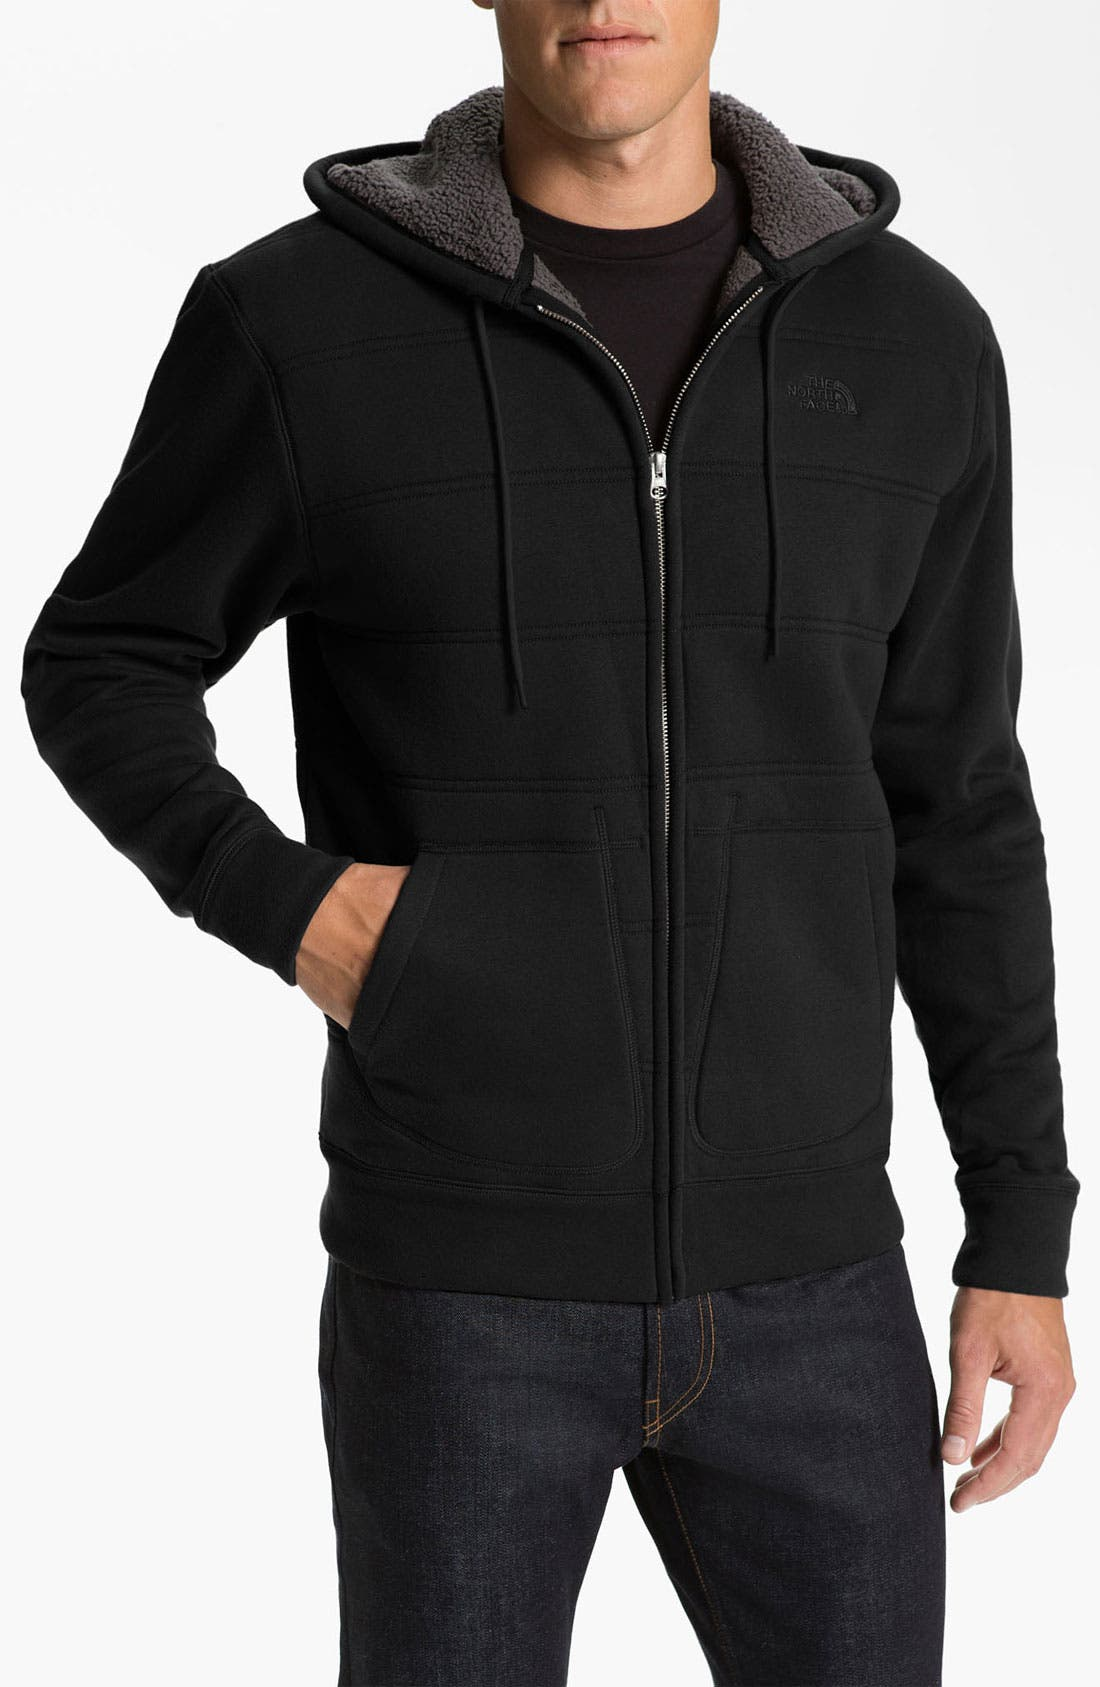 Main Image - The North Face 'Wanaka' Zip Hoodie